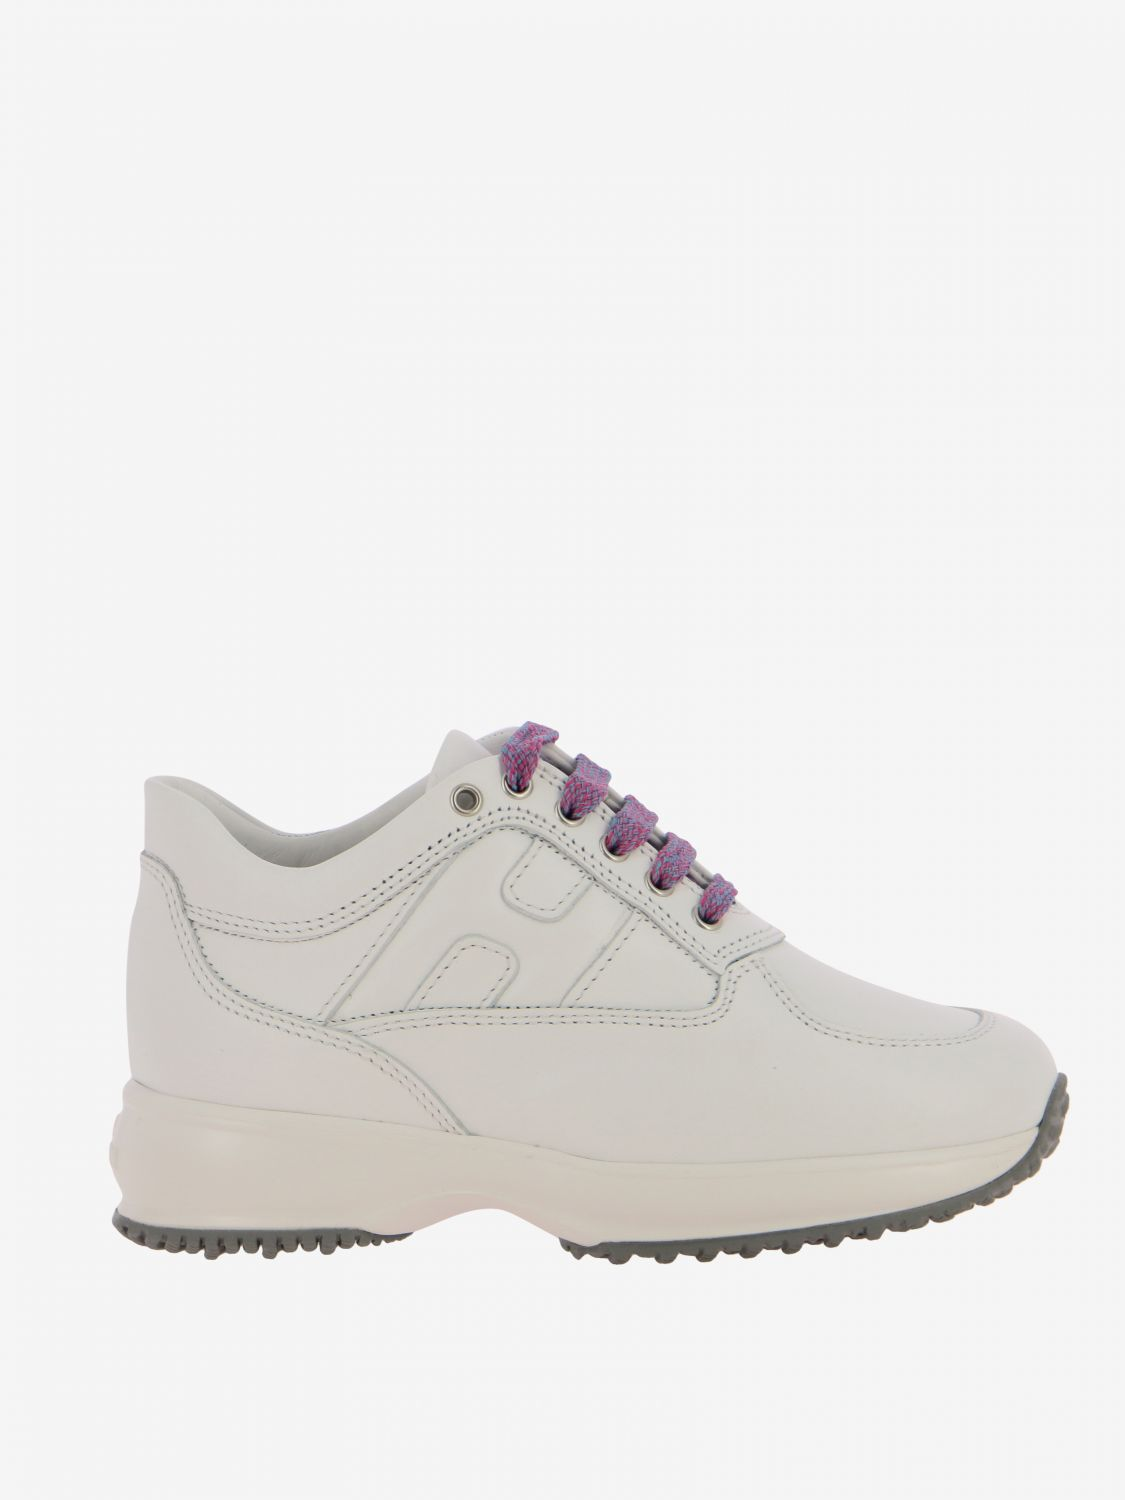 Shoes kids Hogan white 1